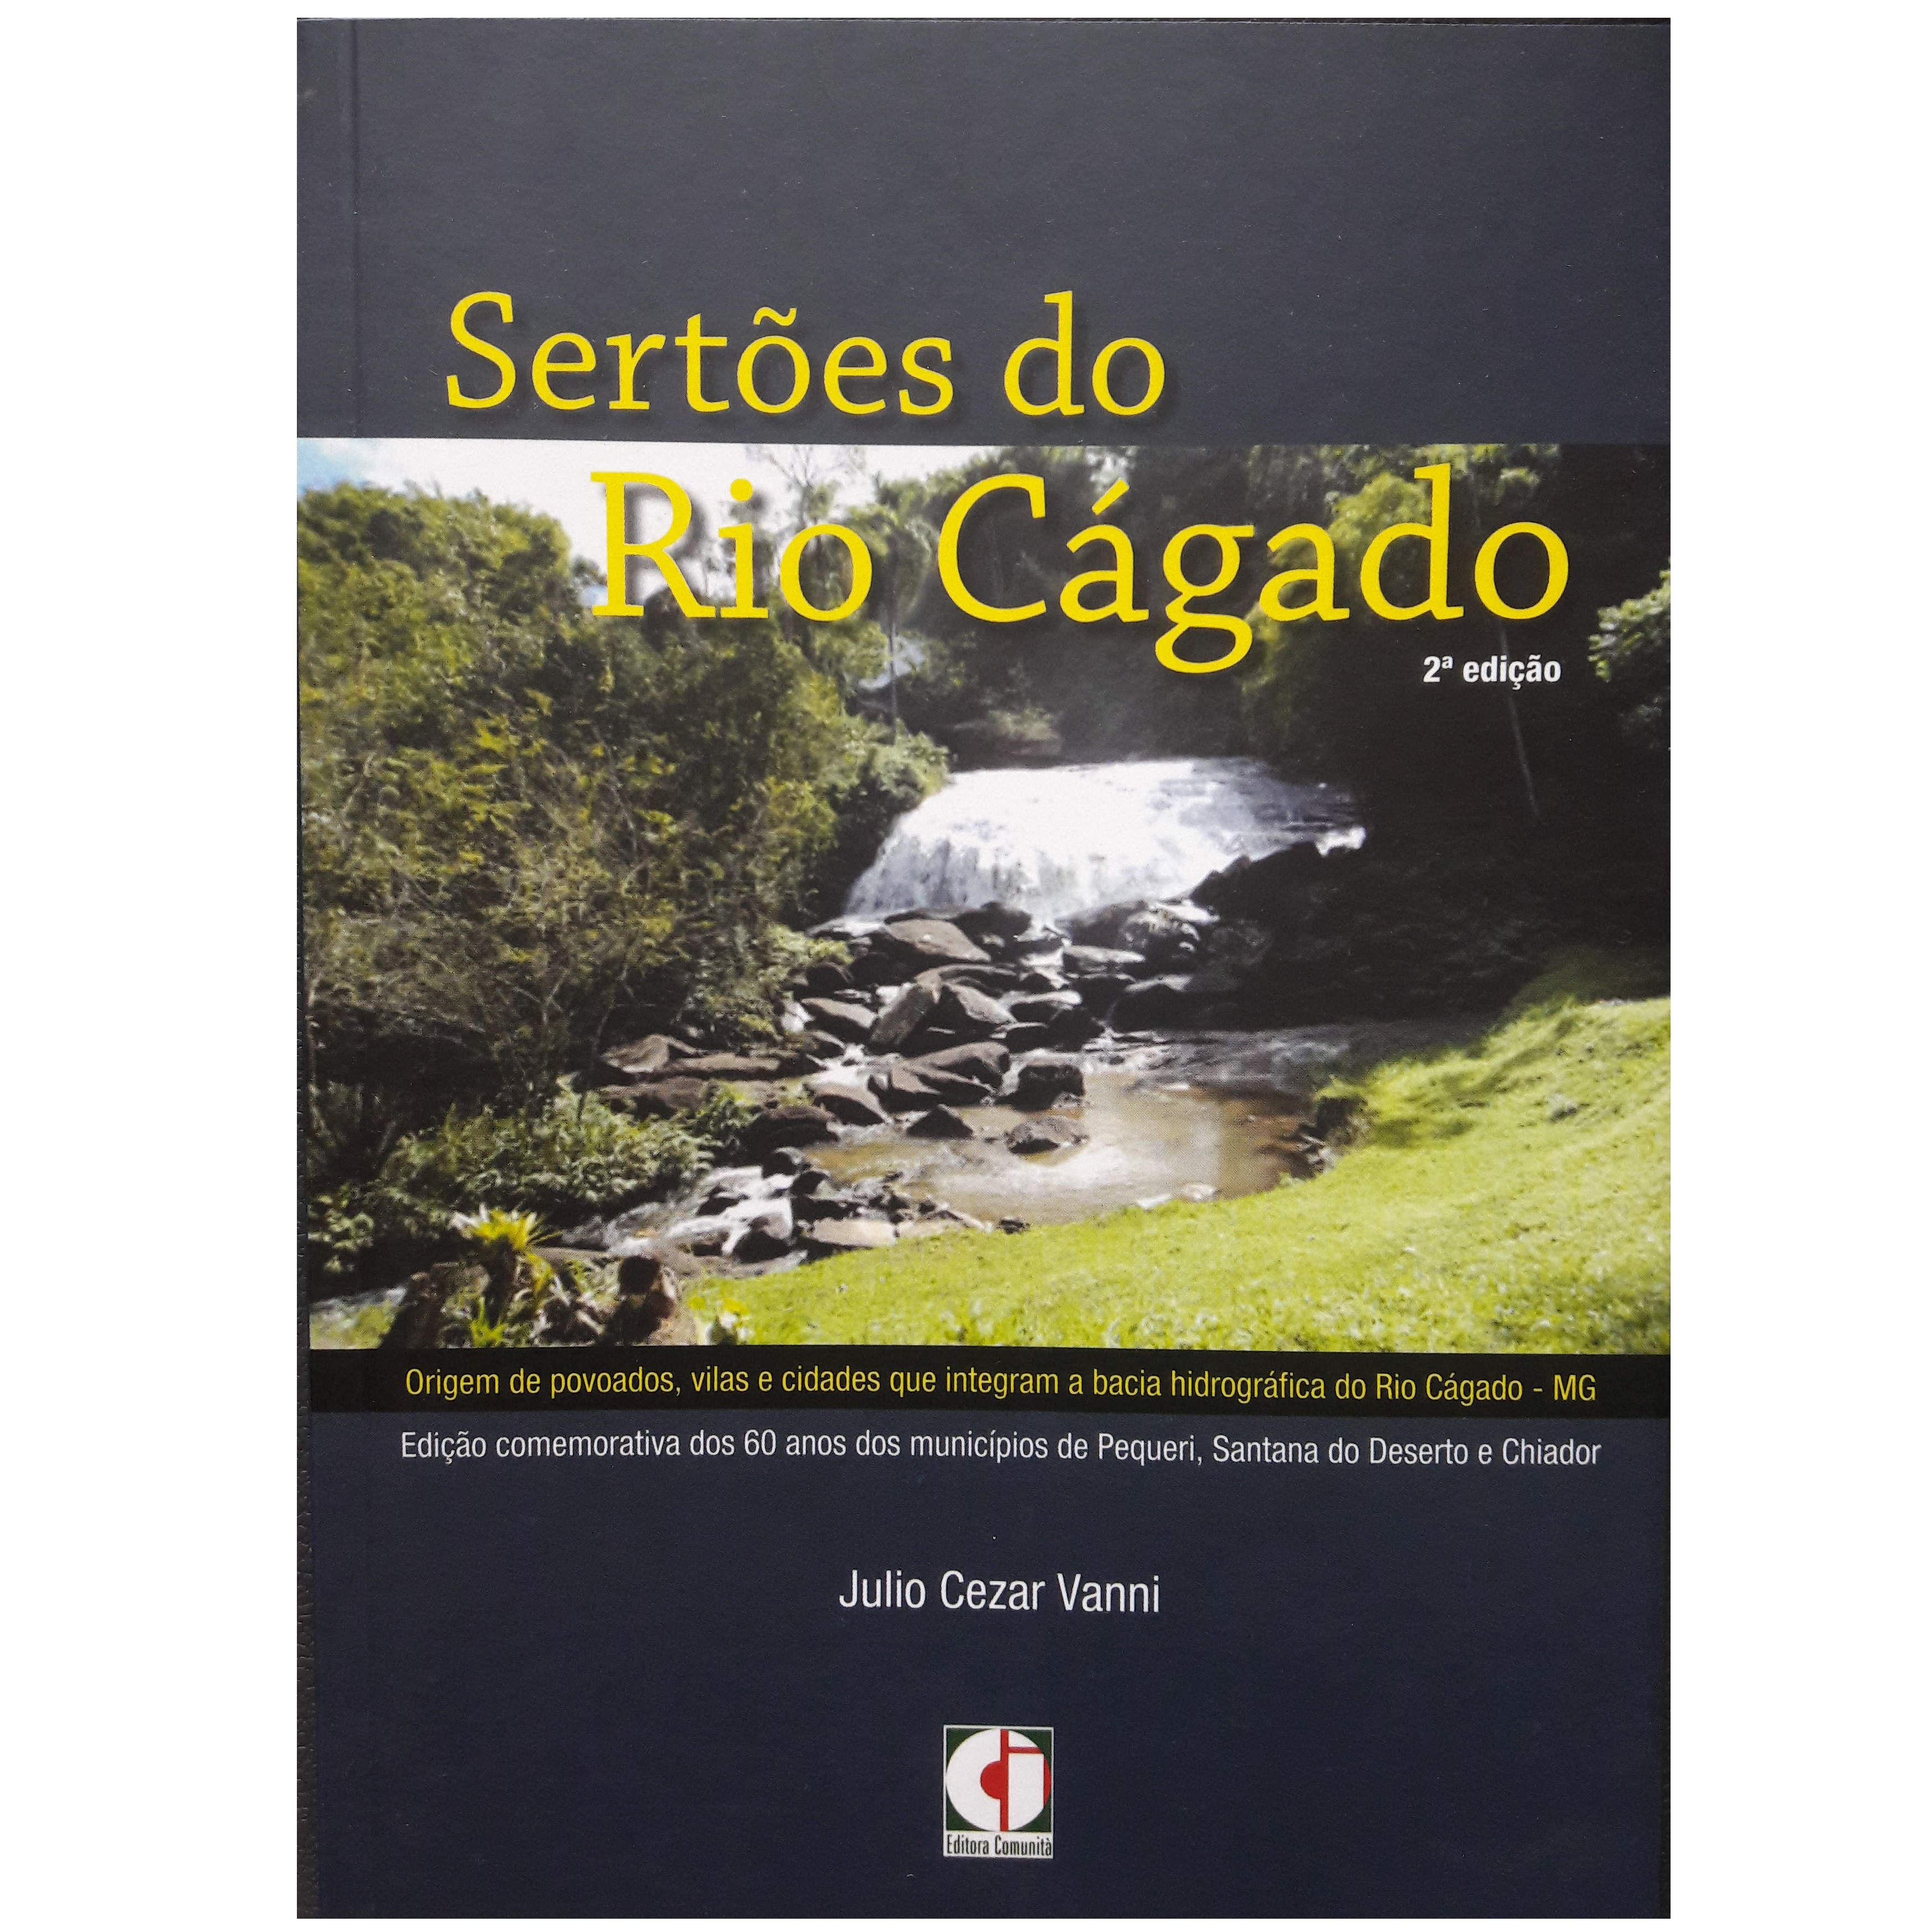 sertoes-do-rio-cagado-julio-vanni